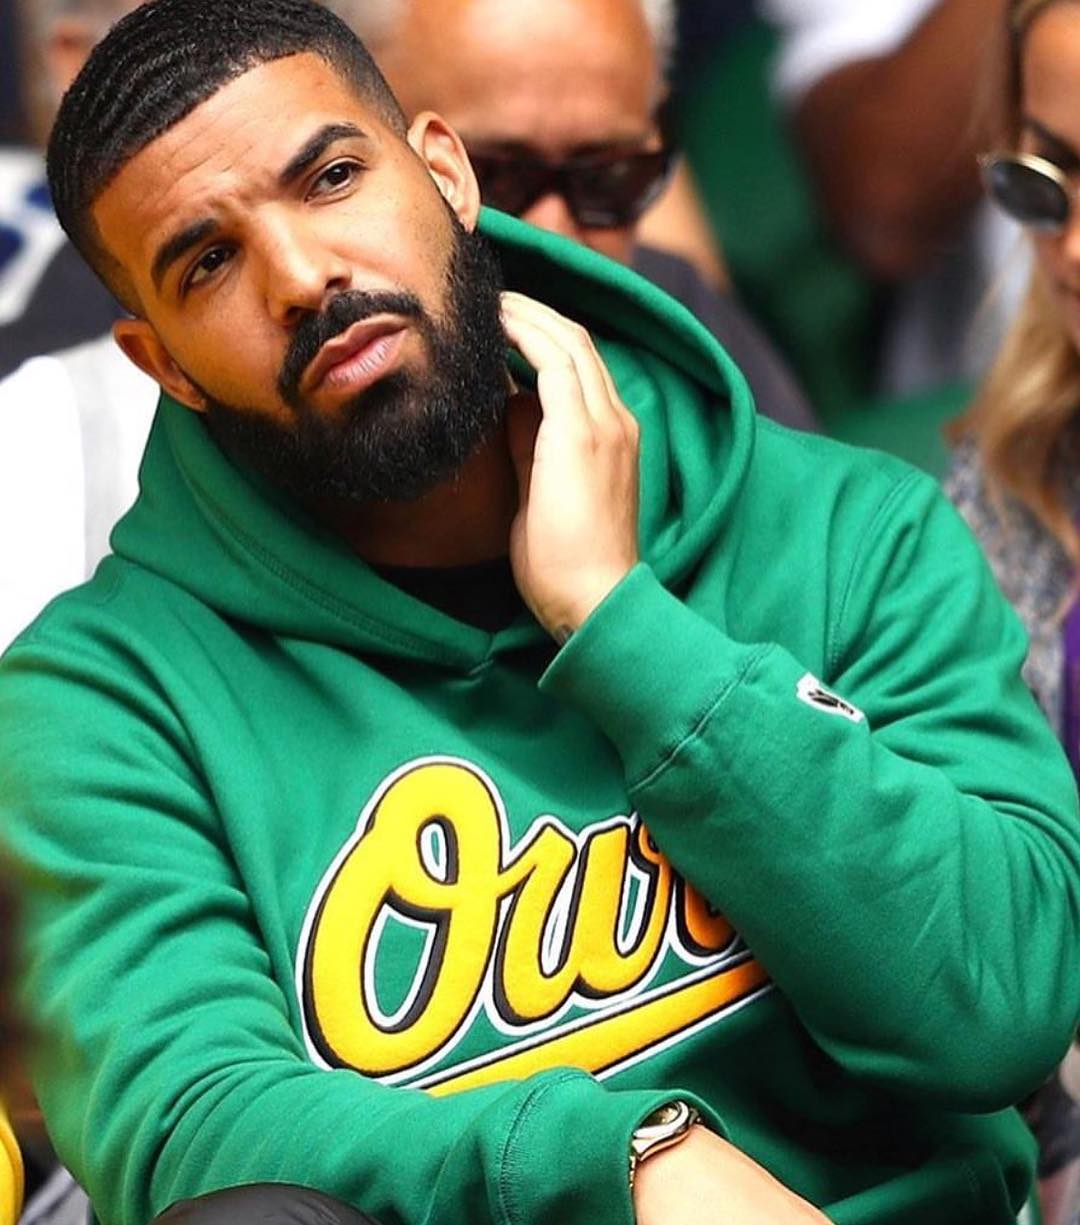 Drake sues Woman who accused him of Raping & Impregnating Her